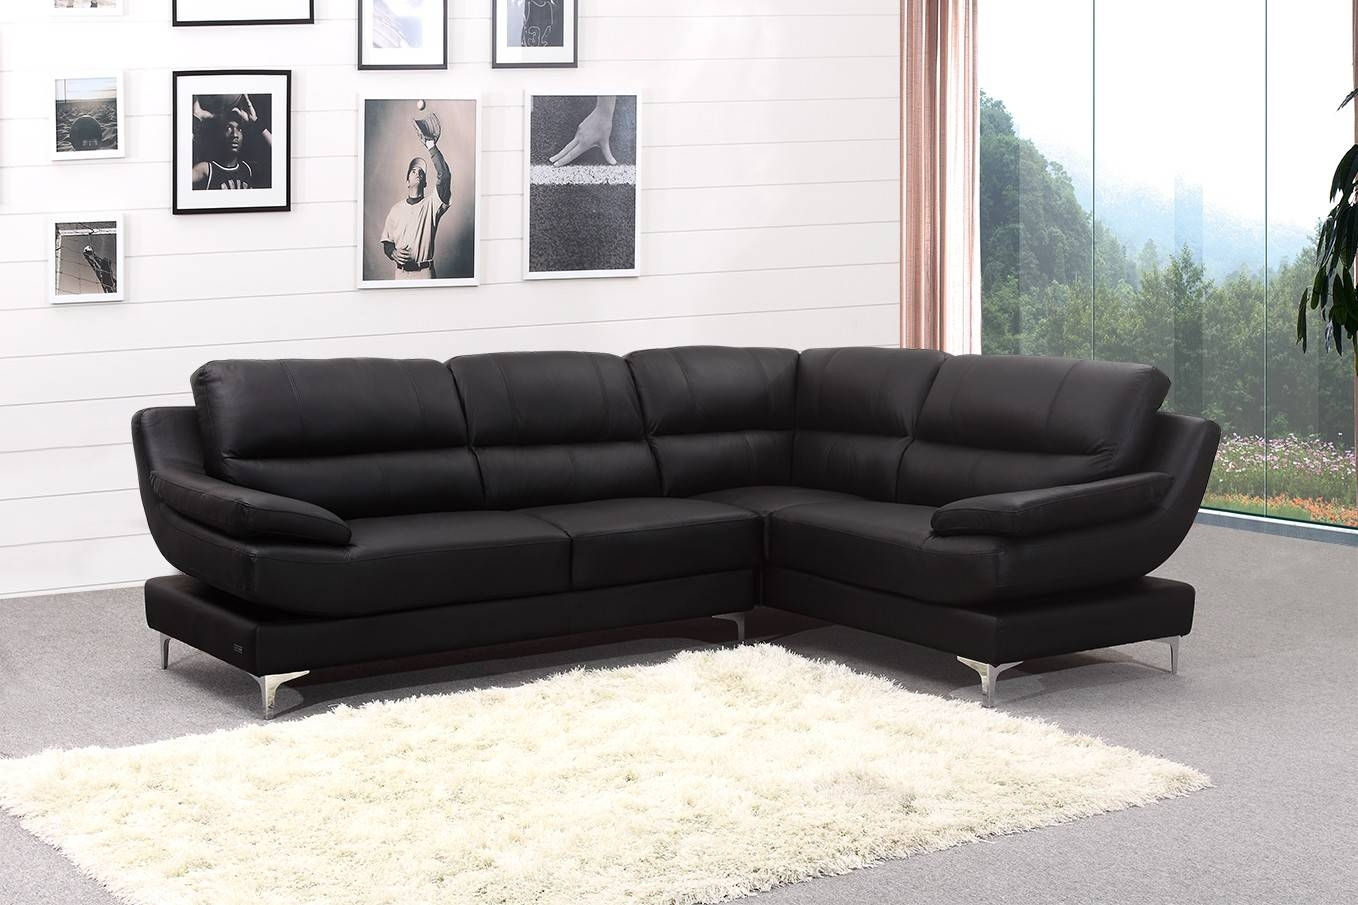 Stylish Leather Corner Sofa Cheap Leather Corner Sofa For Sale pertaining to Cheap Corner Sofas (Image 29 of 30)